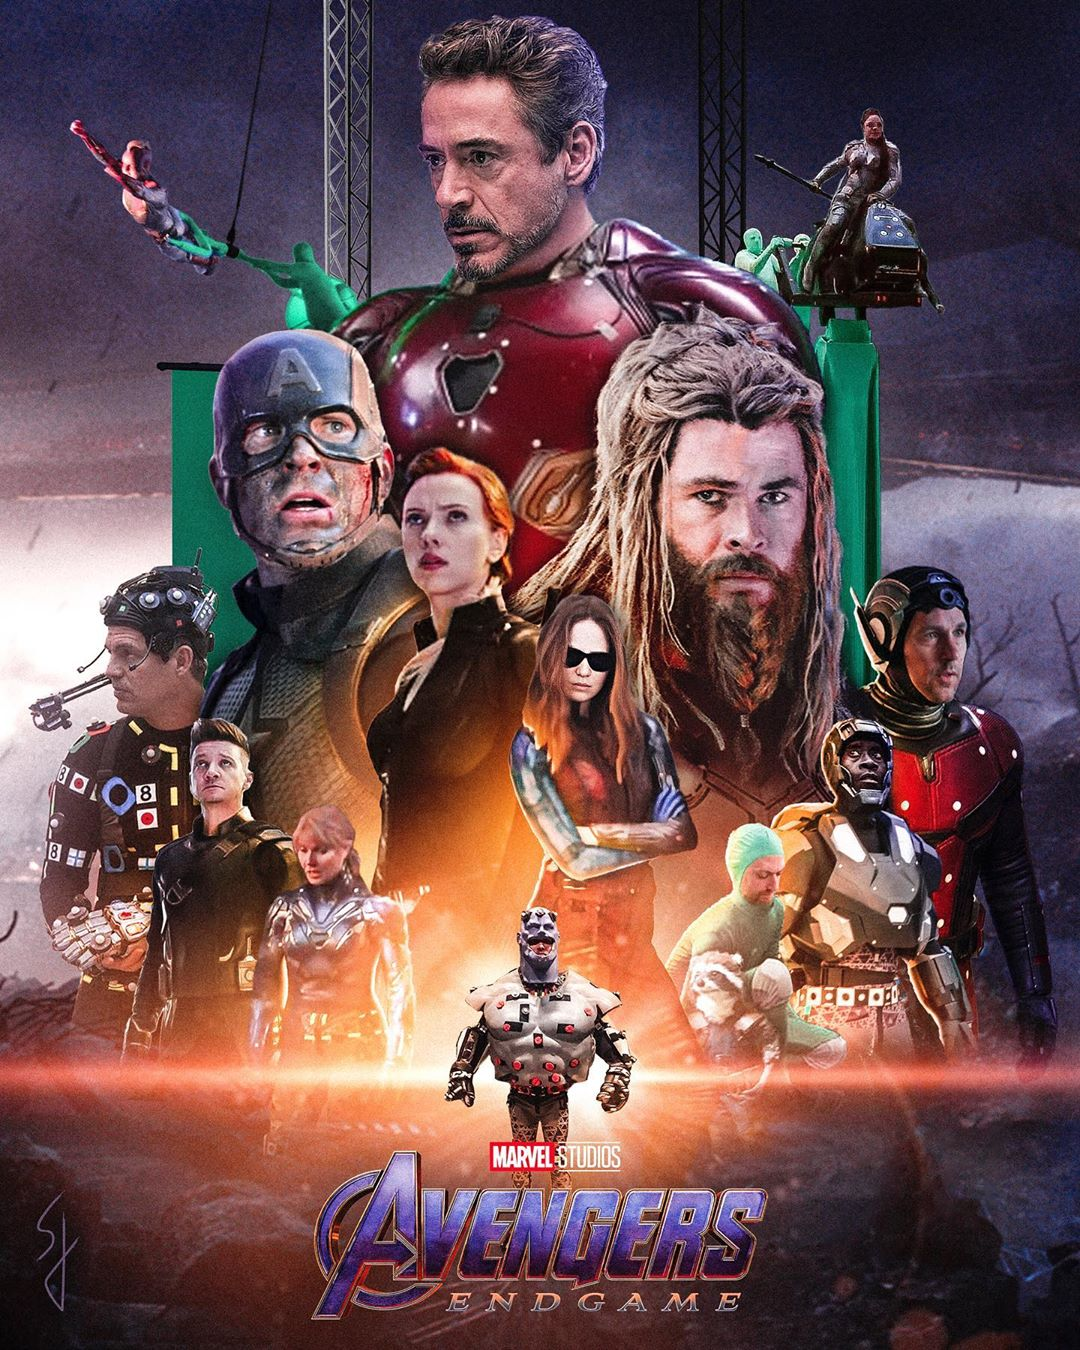 avengers endgame with no cgi poster by